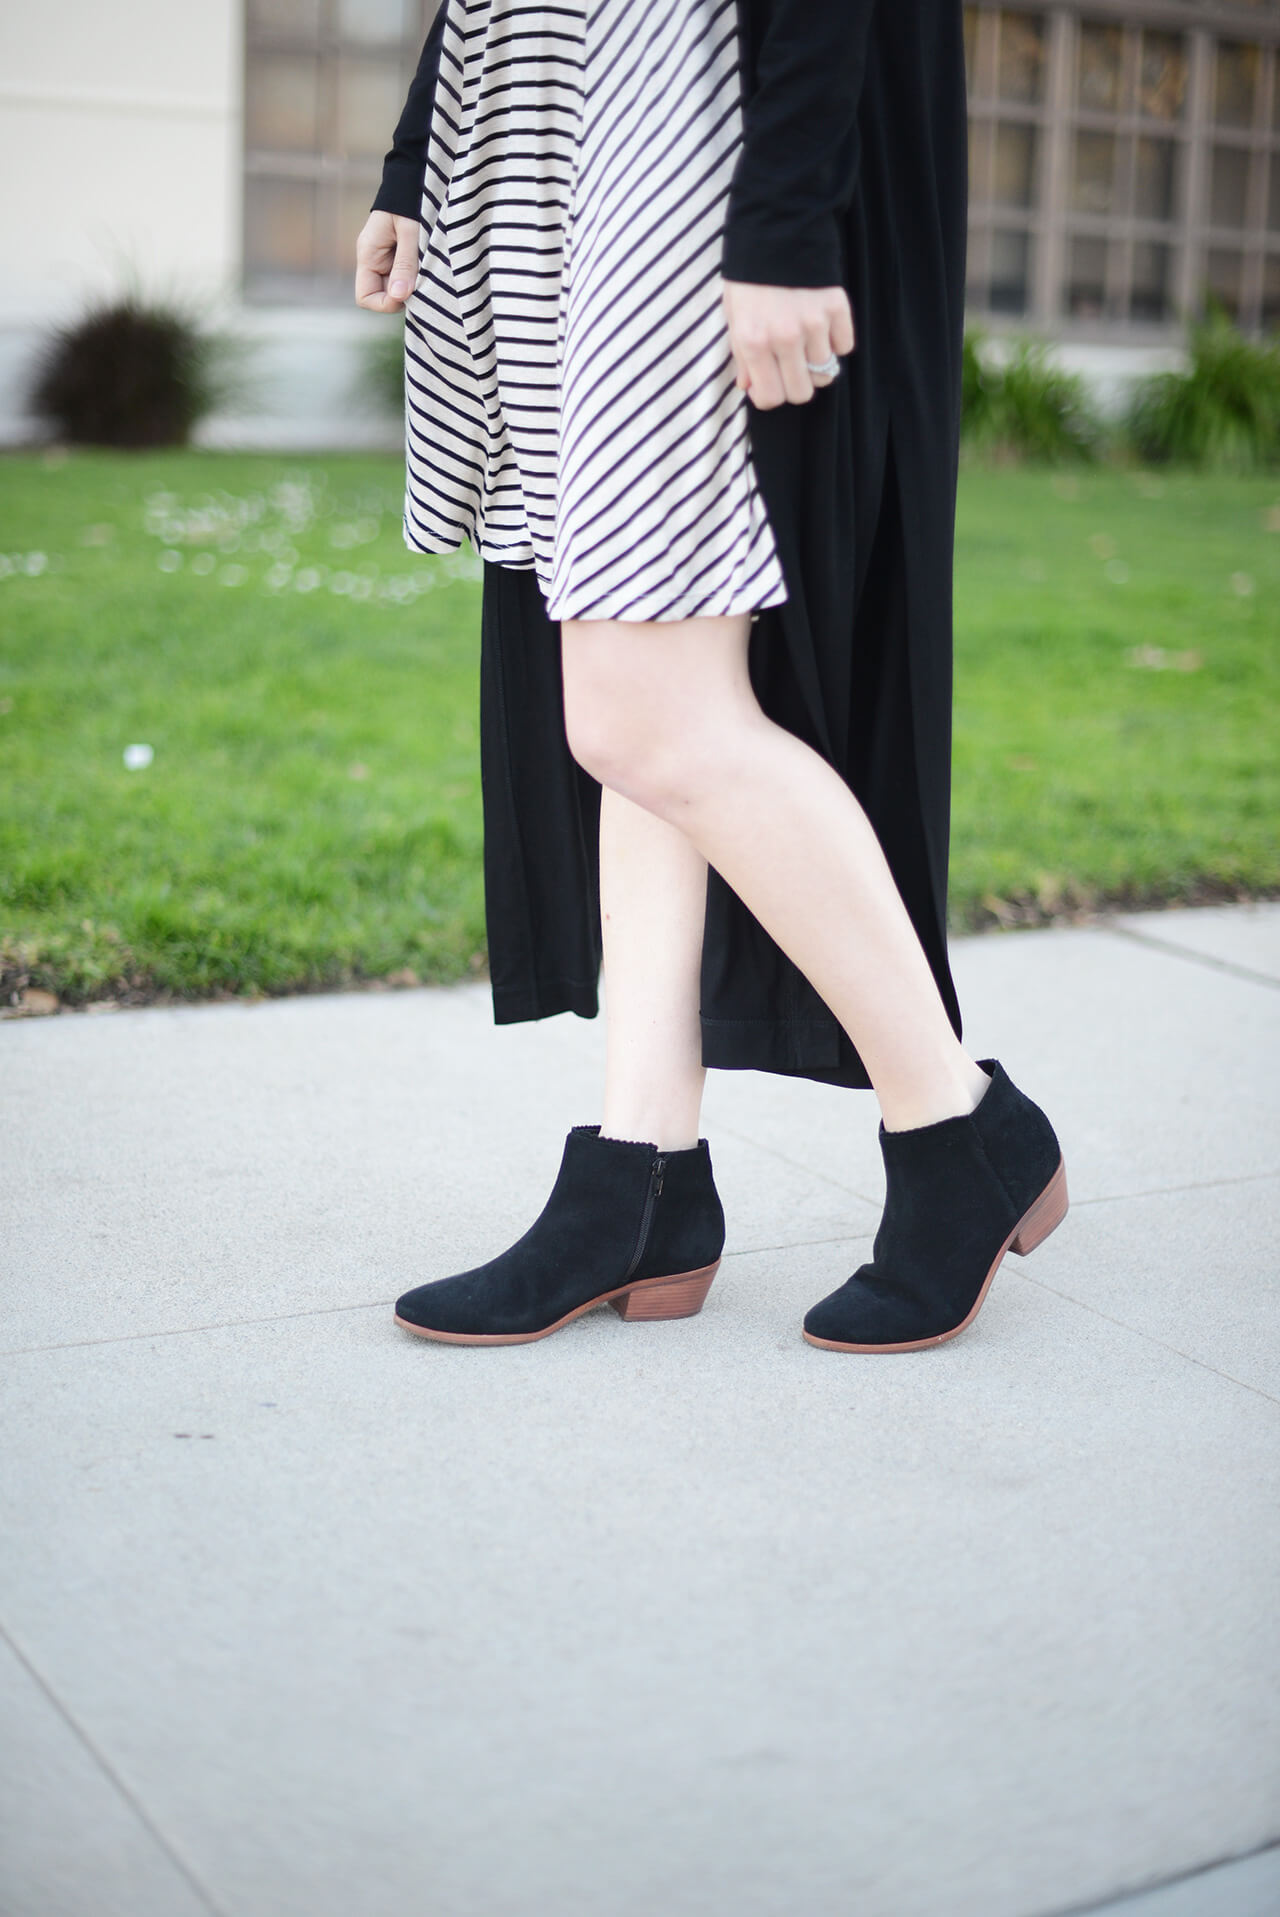 striped dress with black ankle booties